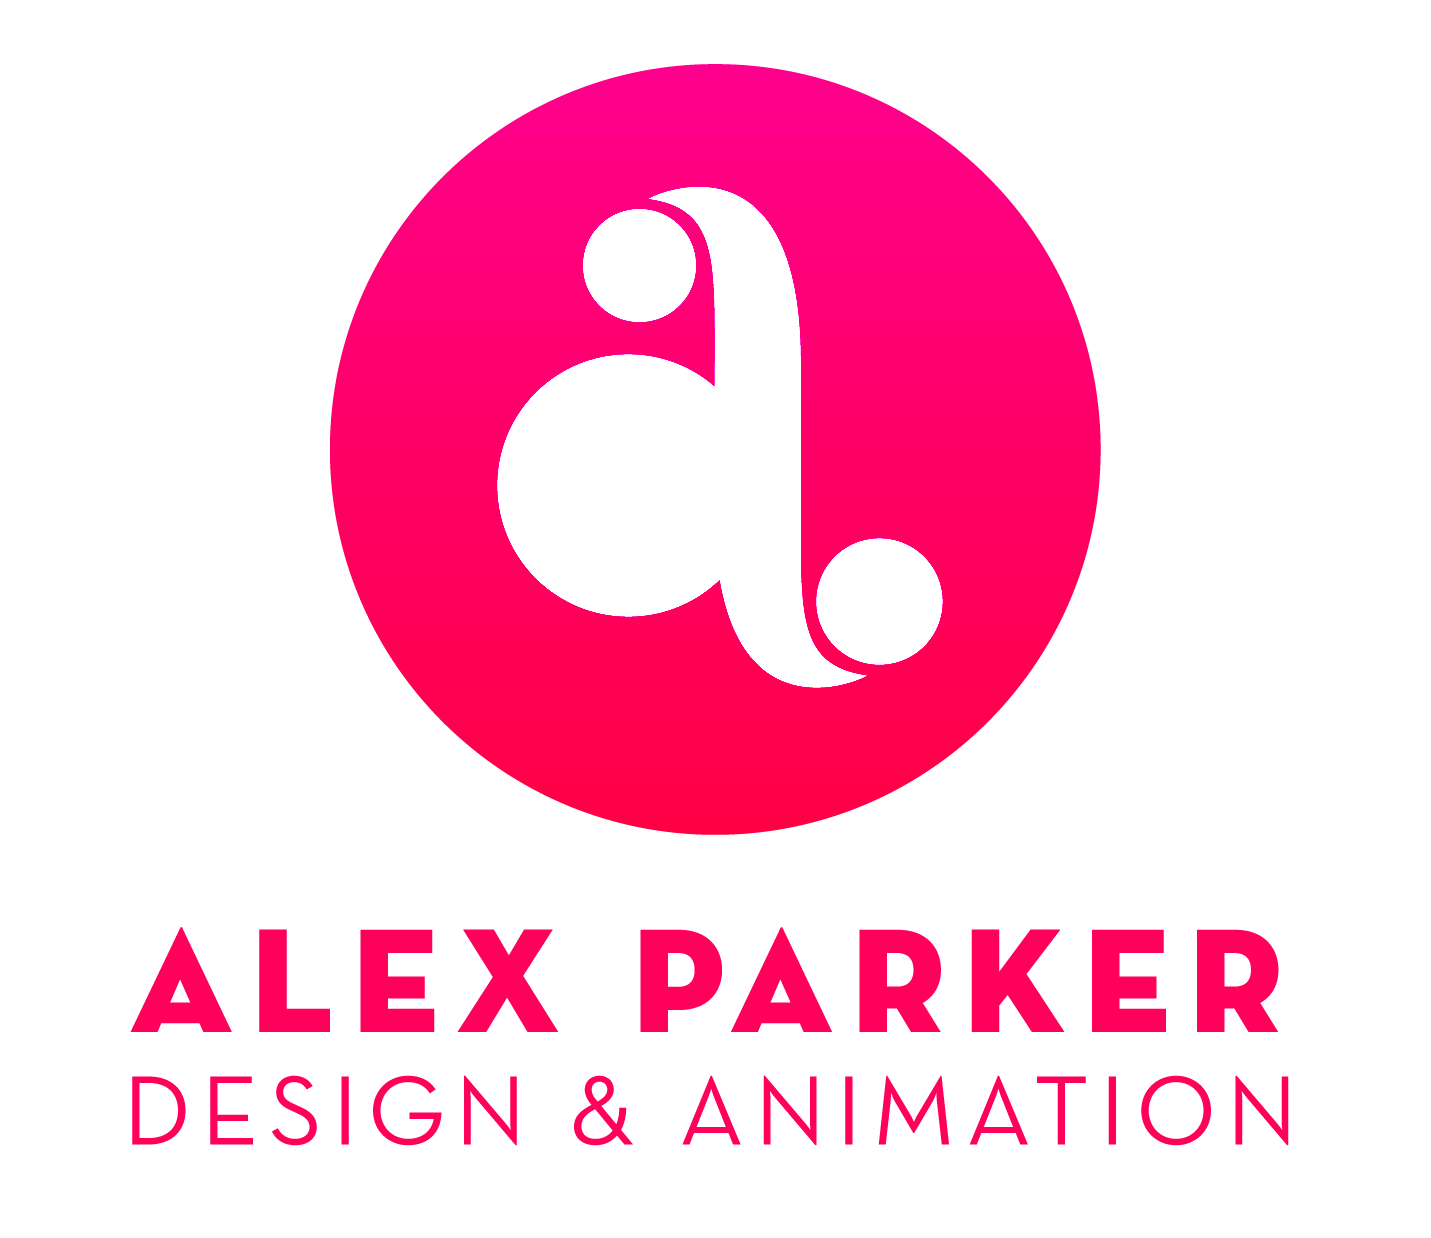 Alex Parker Design & Animation